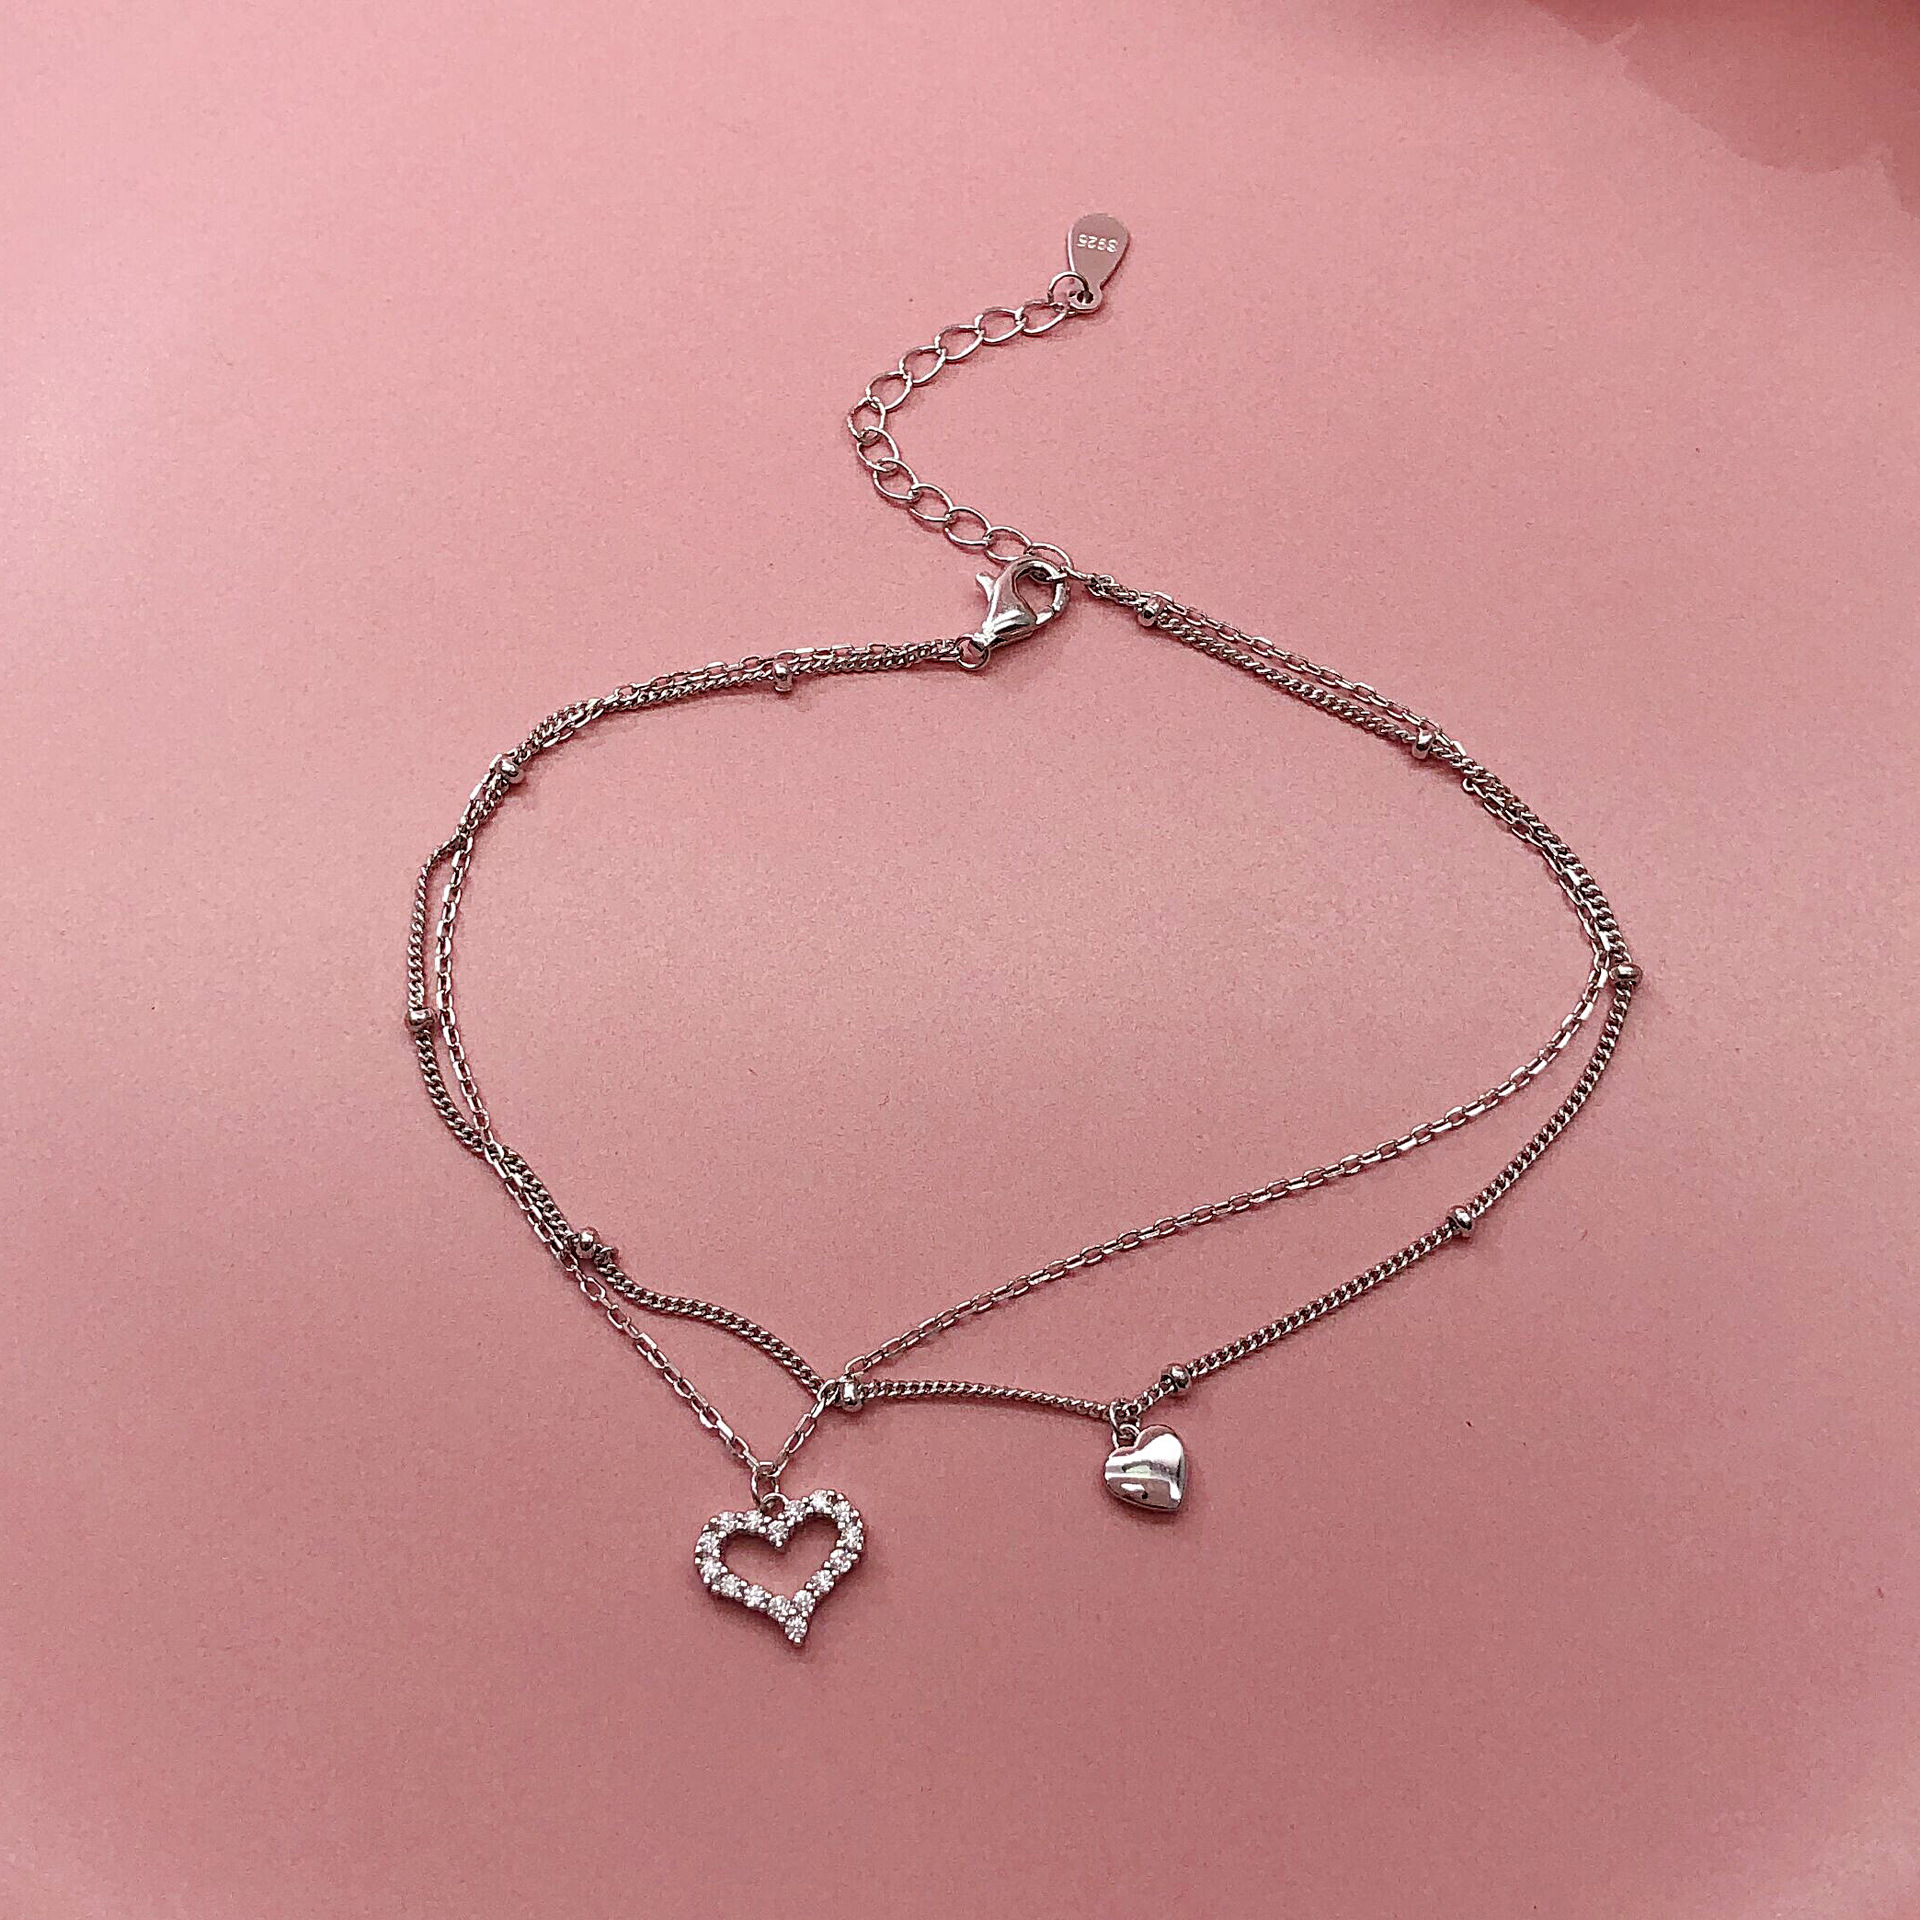 Dainty Double-Layered Heart Anklet for Exquisite Foot Accessory